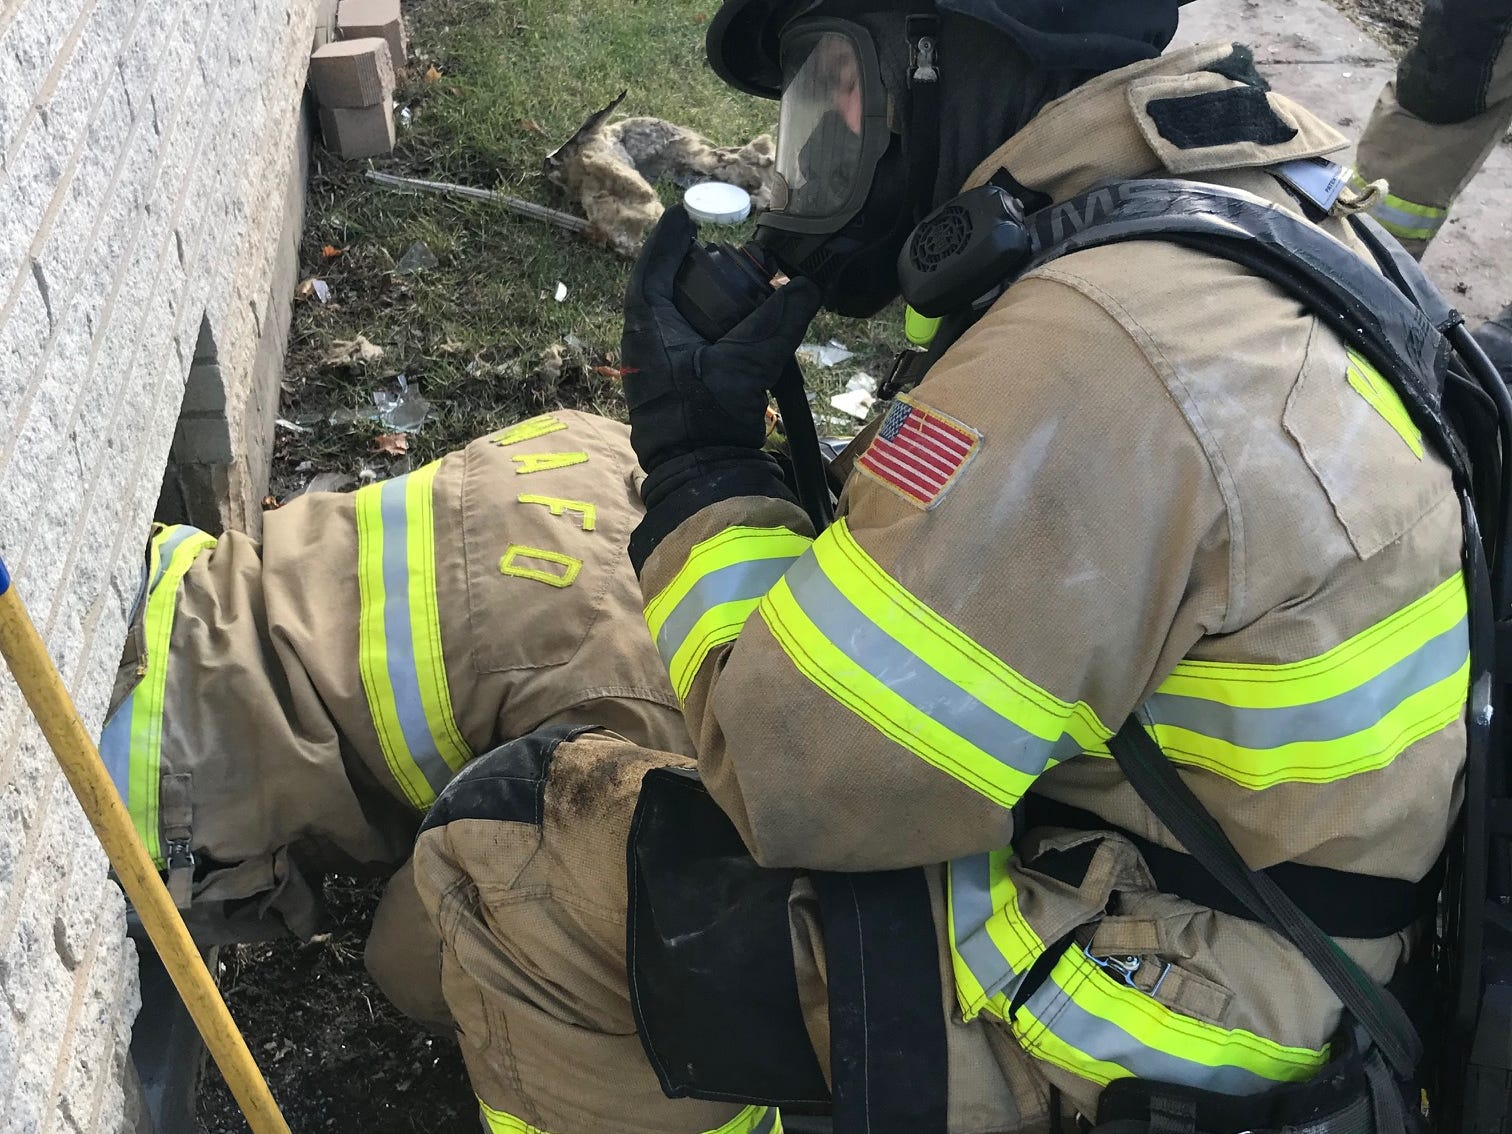 A trapped injured firefighter rescue is practiced, possibly for the first time by West Allis firefighters as they hone their skills at a vacant apartment building. The rescue involves cutting a hole in the wall around a window.